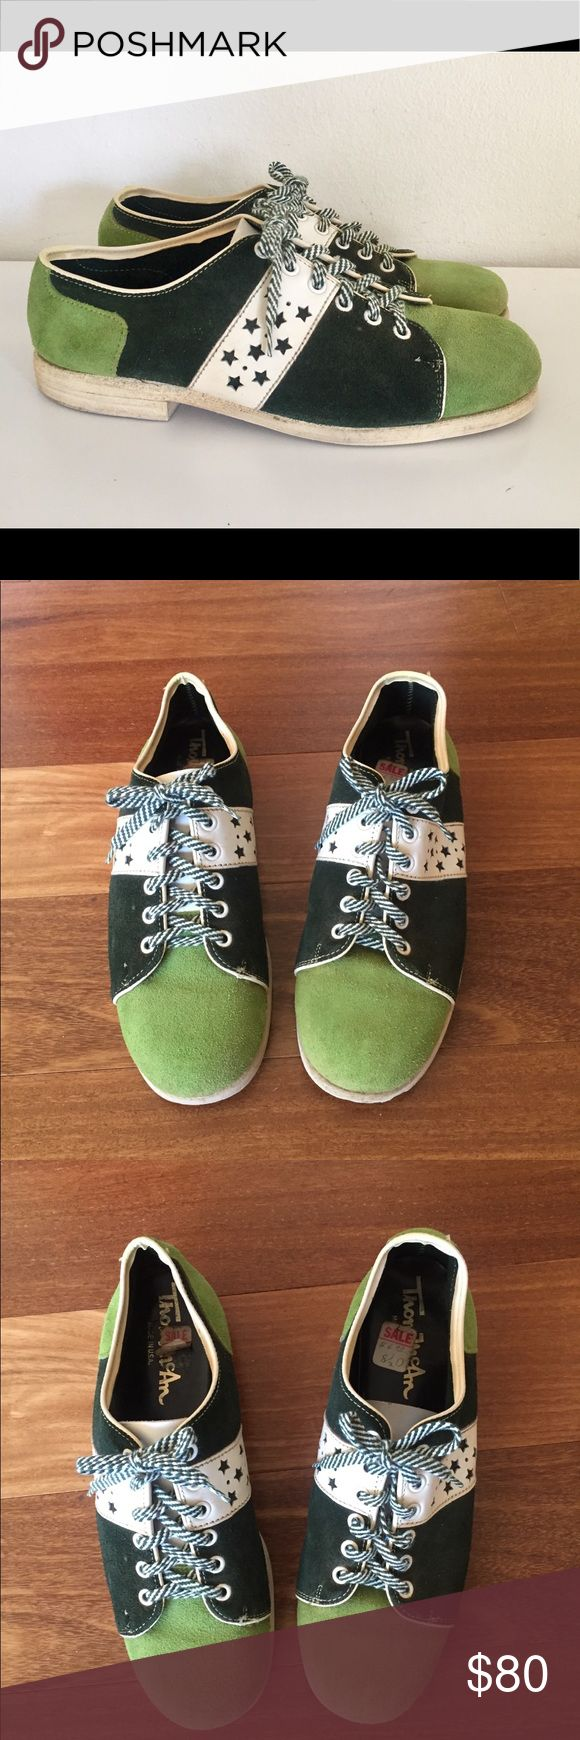 """Vintage 60s Bowling Shoes Two Tone Green 9 60s soft suede leather lace up rounded toe with a Two-tone green and white color block design with star cut outs on the uppers. The laces are green and white stripes, the interior is soft suede leather, the bottom soles are manmade.  Material: leather, rubber Maker: Thom Mcan Era: 60's Size: unmarked fit like mens 9M, going by fit and measurements  Measurements 10.75"""" insole 4"""" width (at the widest part of the shoe)  Condition: good used condition…"""